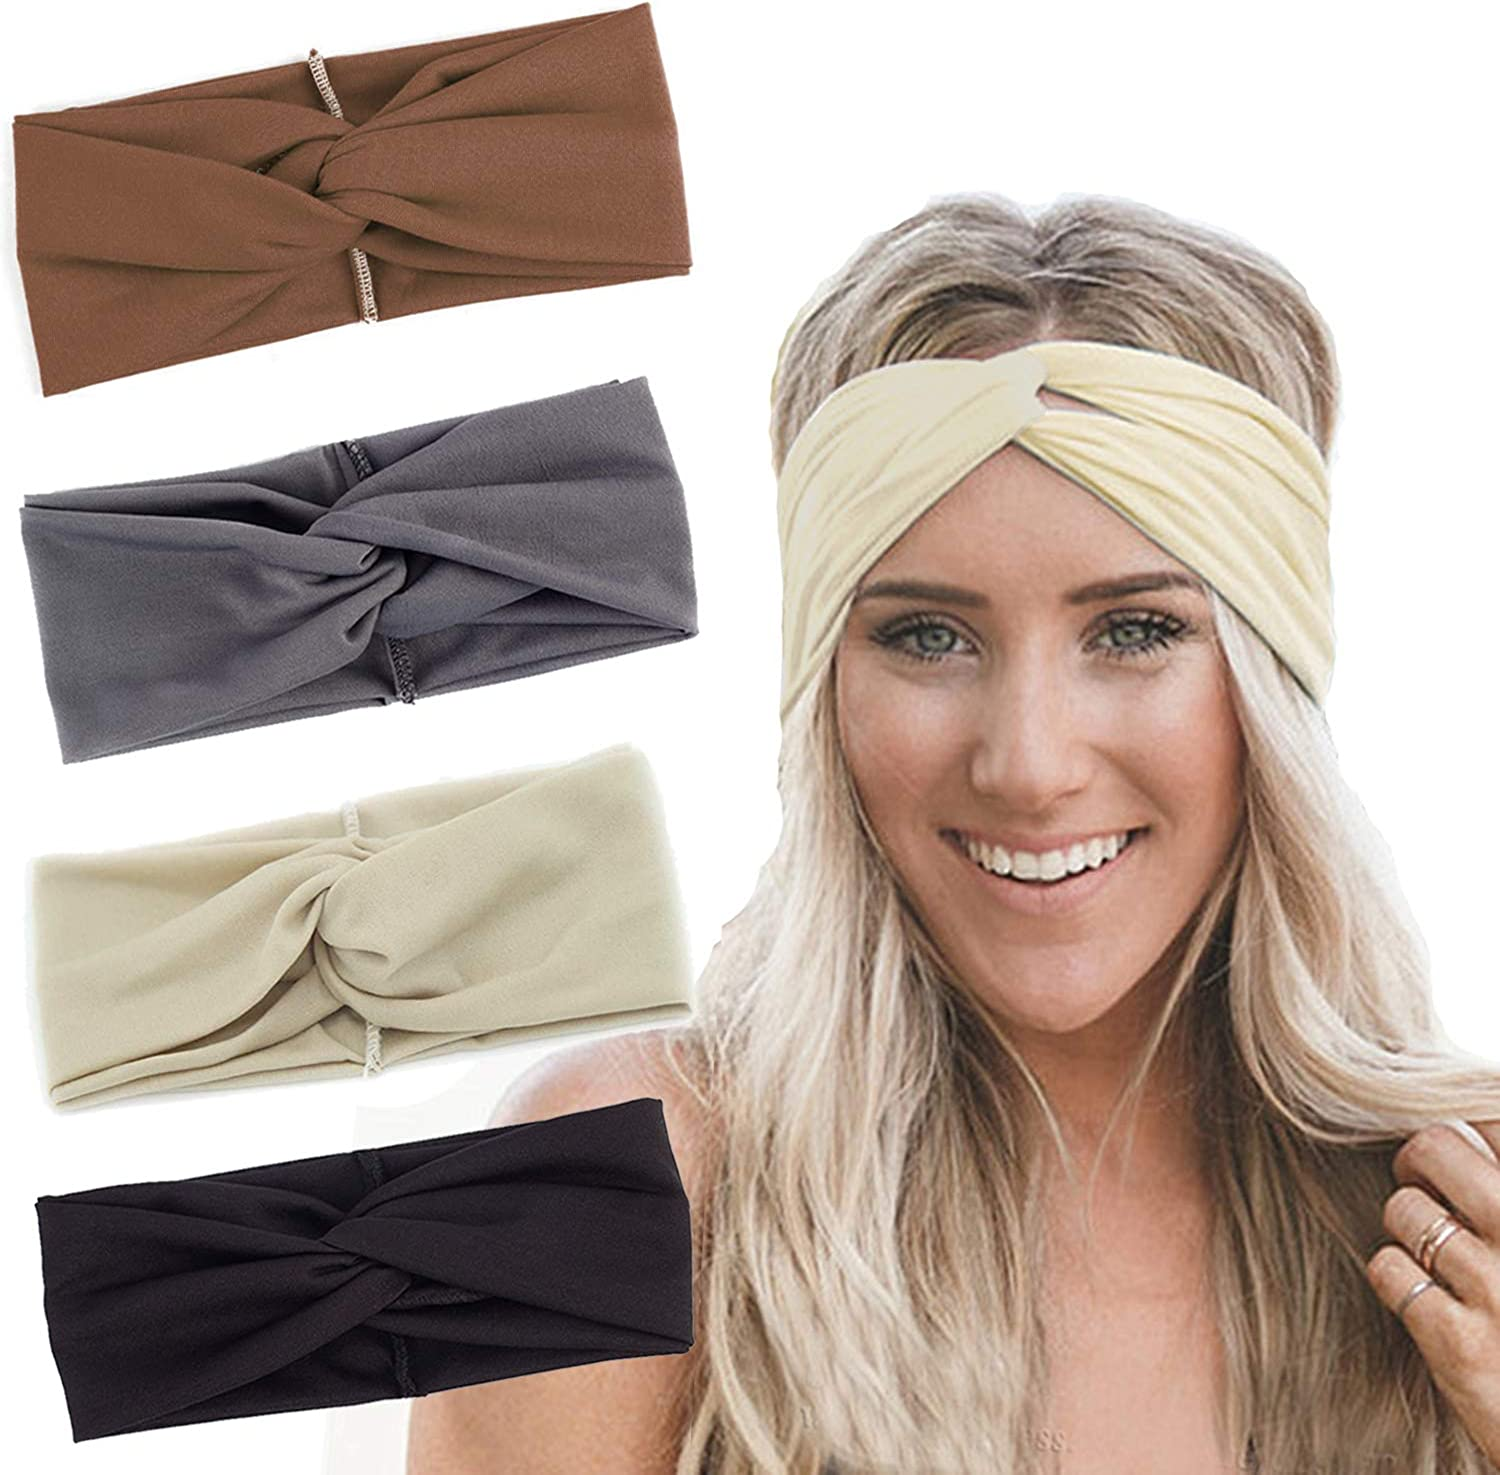 RIOSO Turban Headbands for Women Twisted Boho Headwrap Yoga Workout Sport Thick Head Bands(4 pack) at  Women's Clothing store